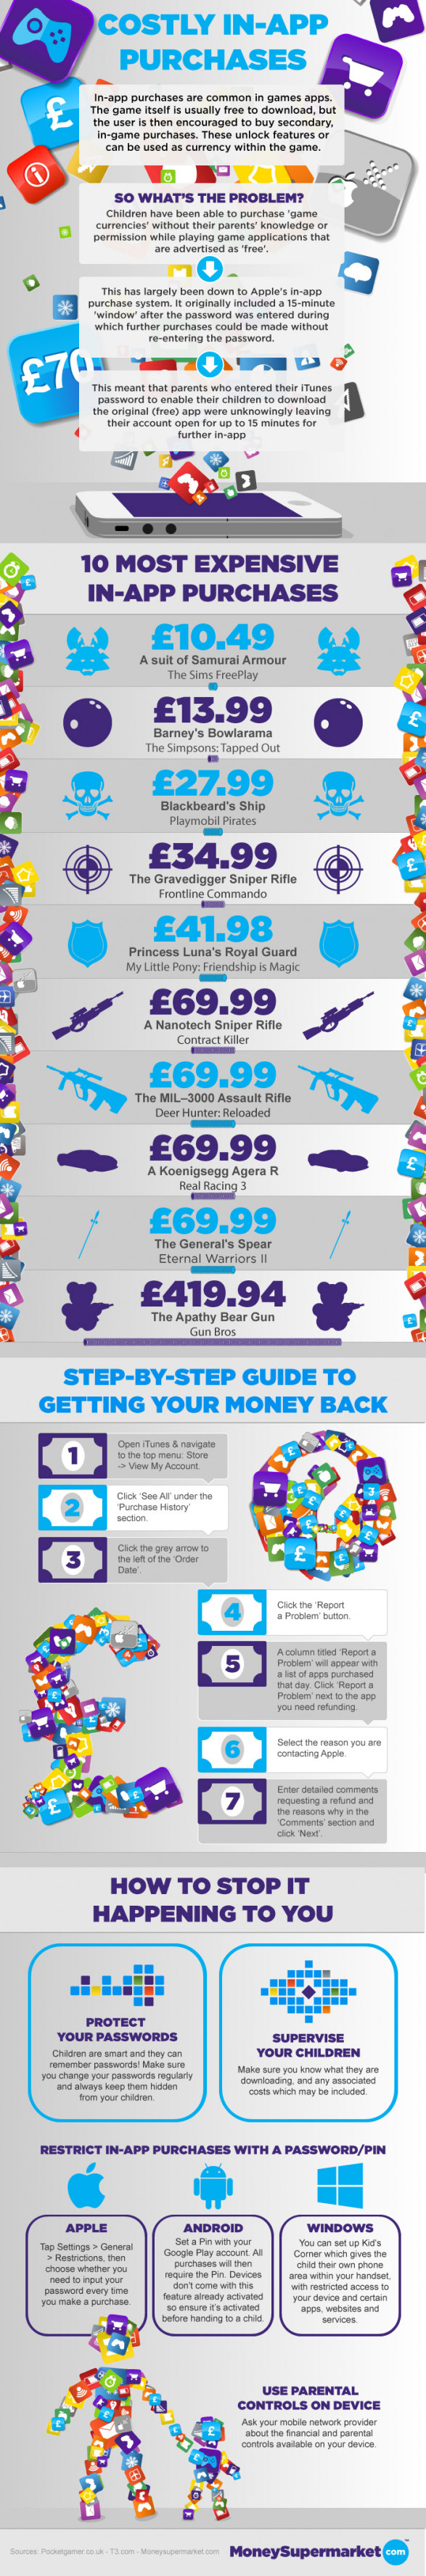 Costly In-App Purchases [InfoGraphic]